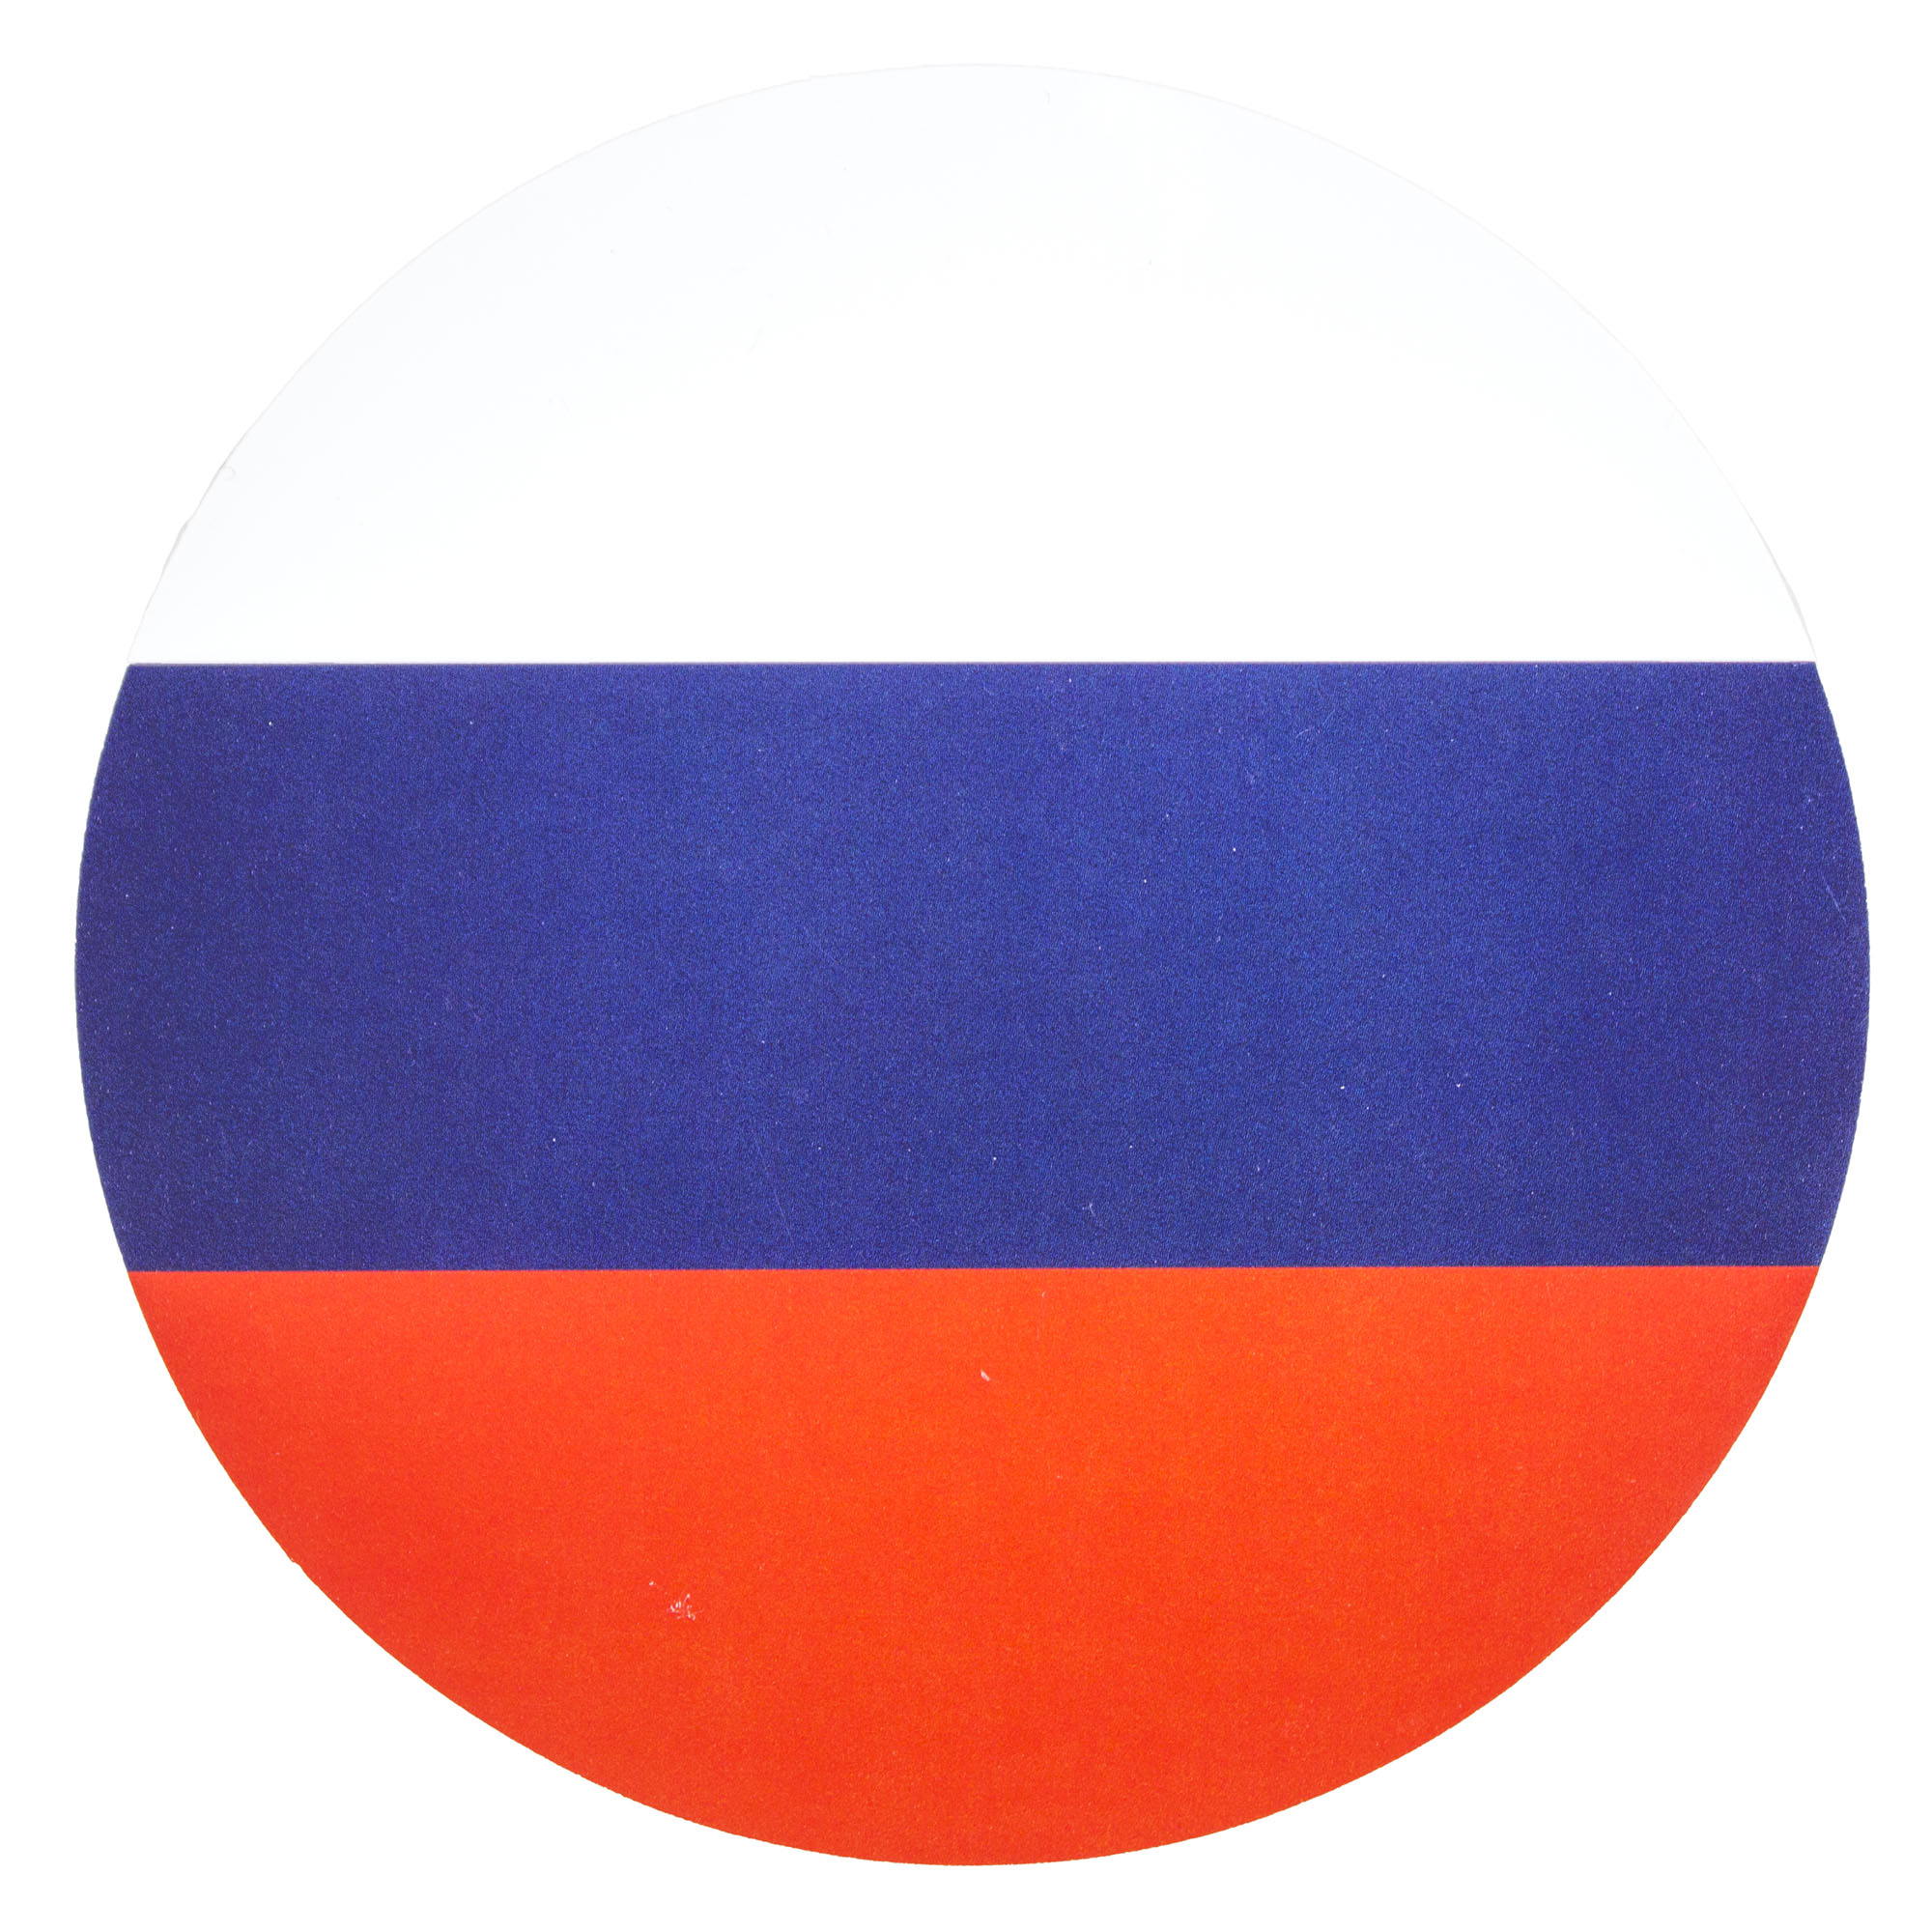 Russian Tricolor sticker